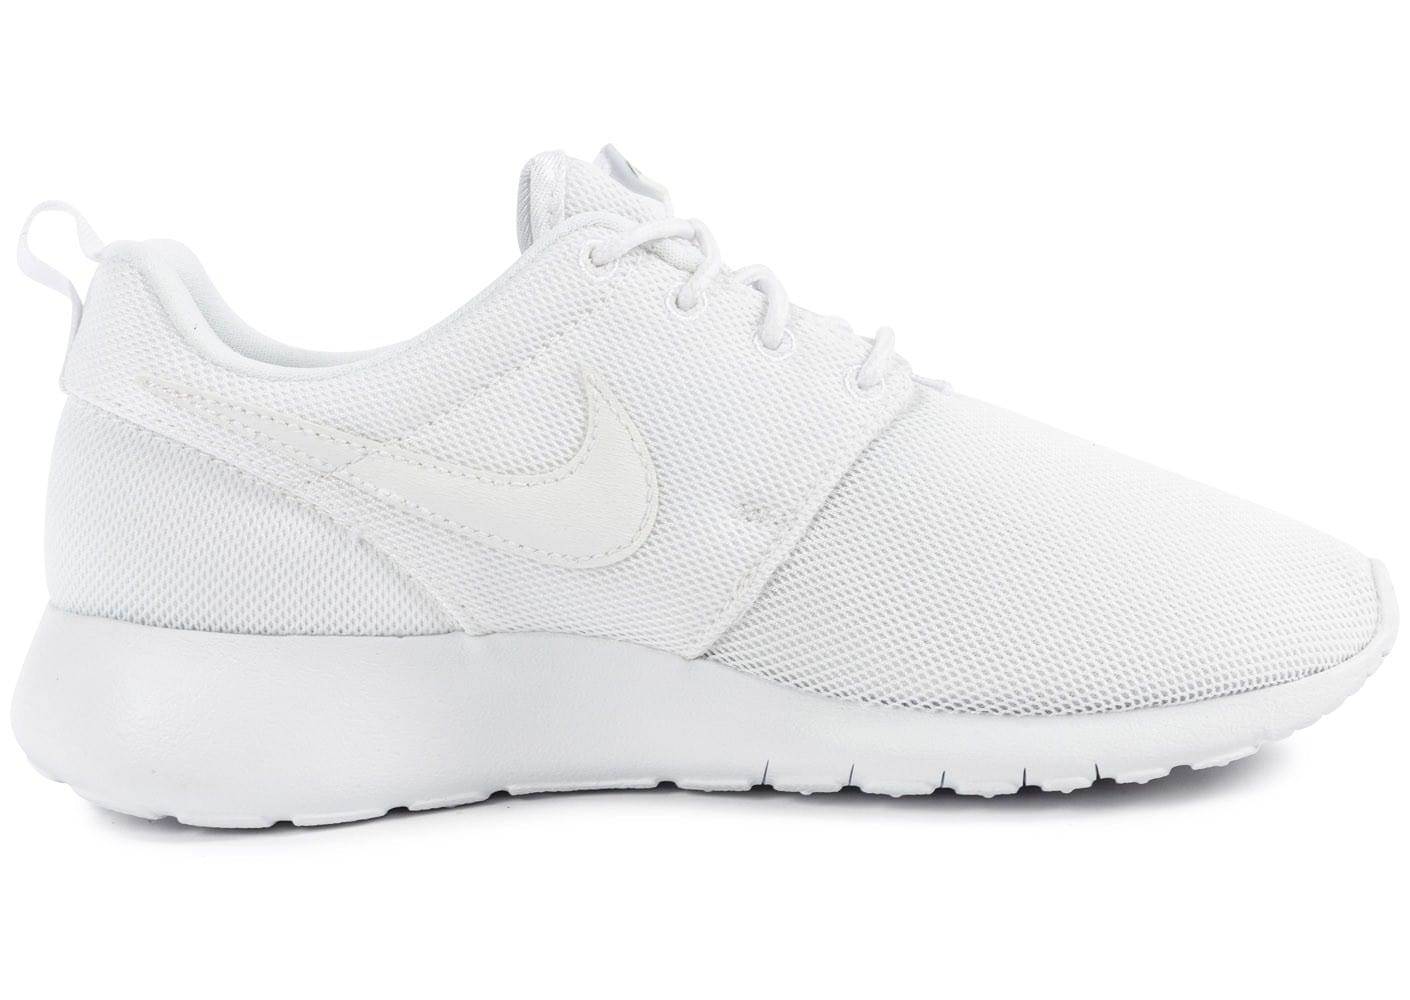 ... Chaussures Nike Roshe One Junior blanche vue dessous ...